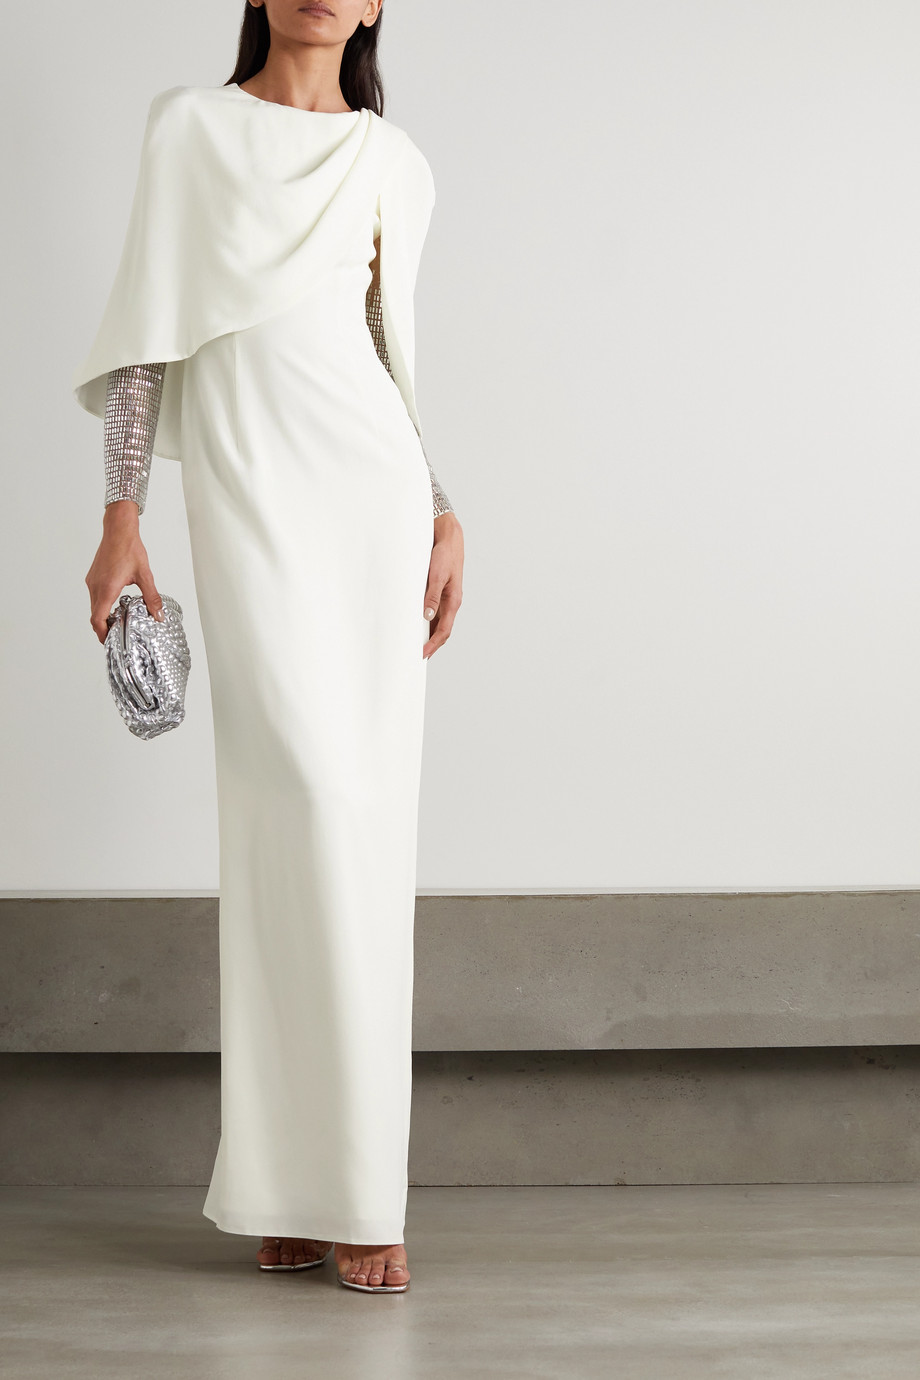 Jenny Packham Ursula cape-effect crepe and embellished tulle gown